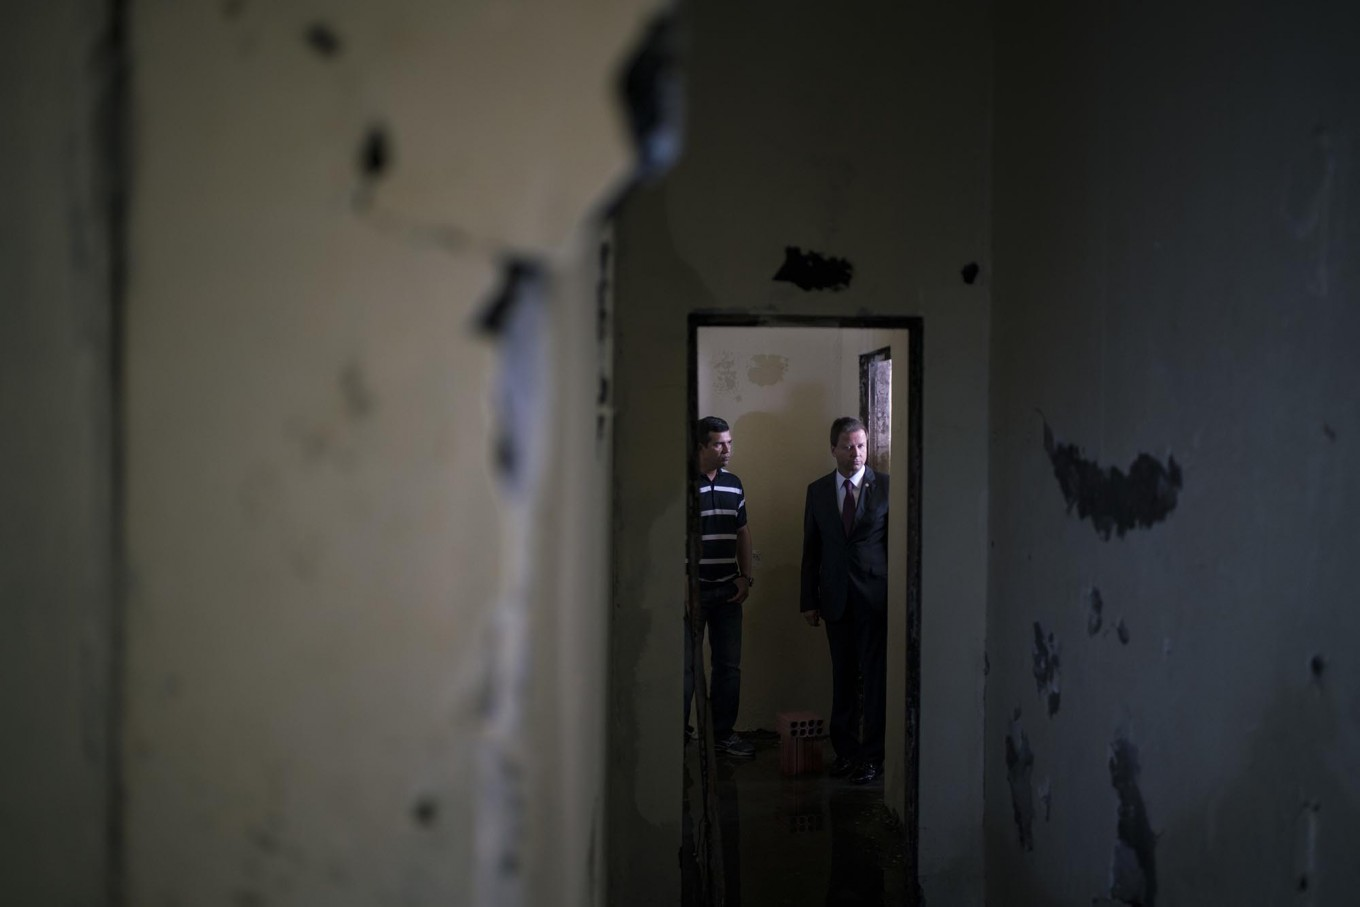 "In this Feb. 2, 2017 photo, Claudio Lamachia, head of Brazil's Bar Association, right, stands in a cell where several inmates were killed at the Anisio Jobim penitentiary complex, known by its Portuguese acronym of Compaj, in Manaus, Brazil. ""Our prisons are universities of crime and we are financing drug gangs inside the prisons by overcrowding them,"" he said. AP Photo/Felipe Dana"